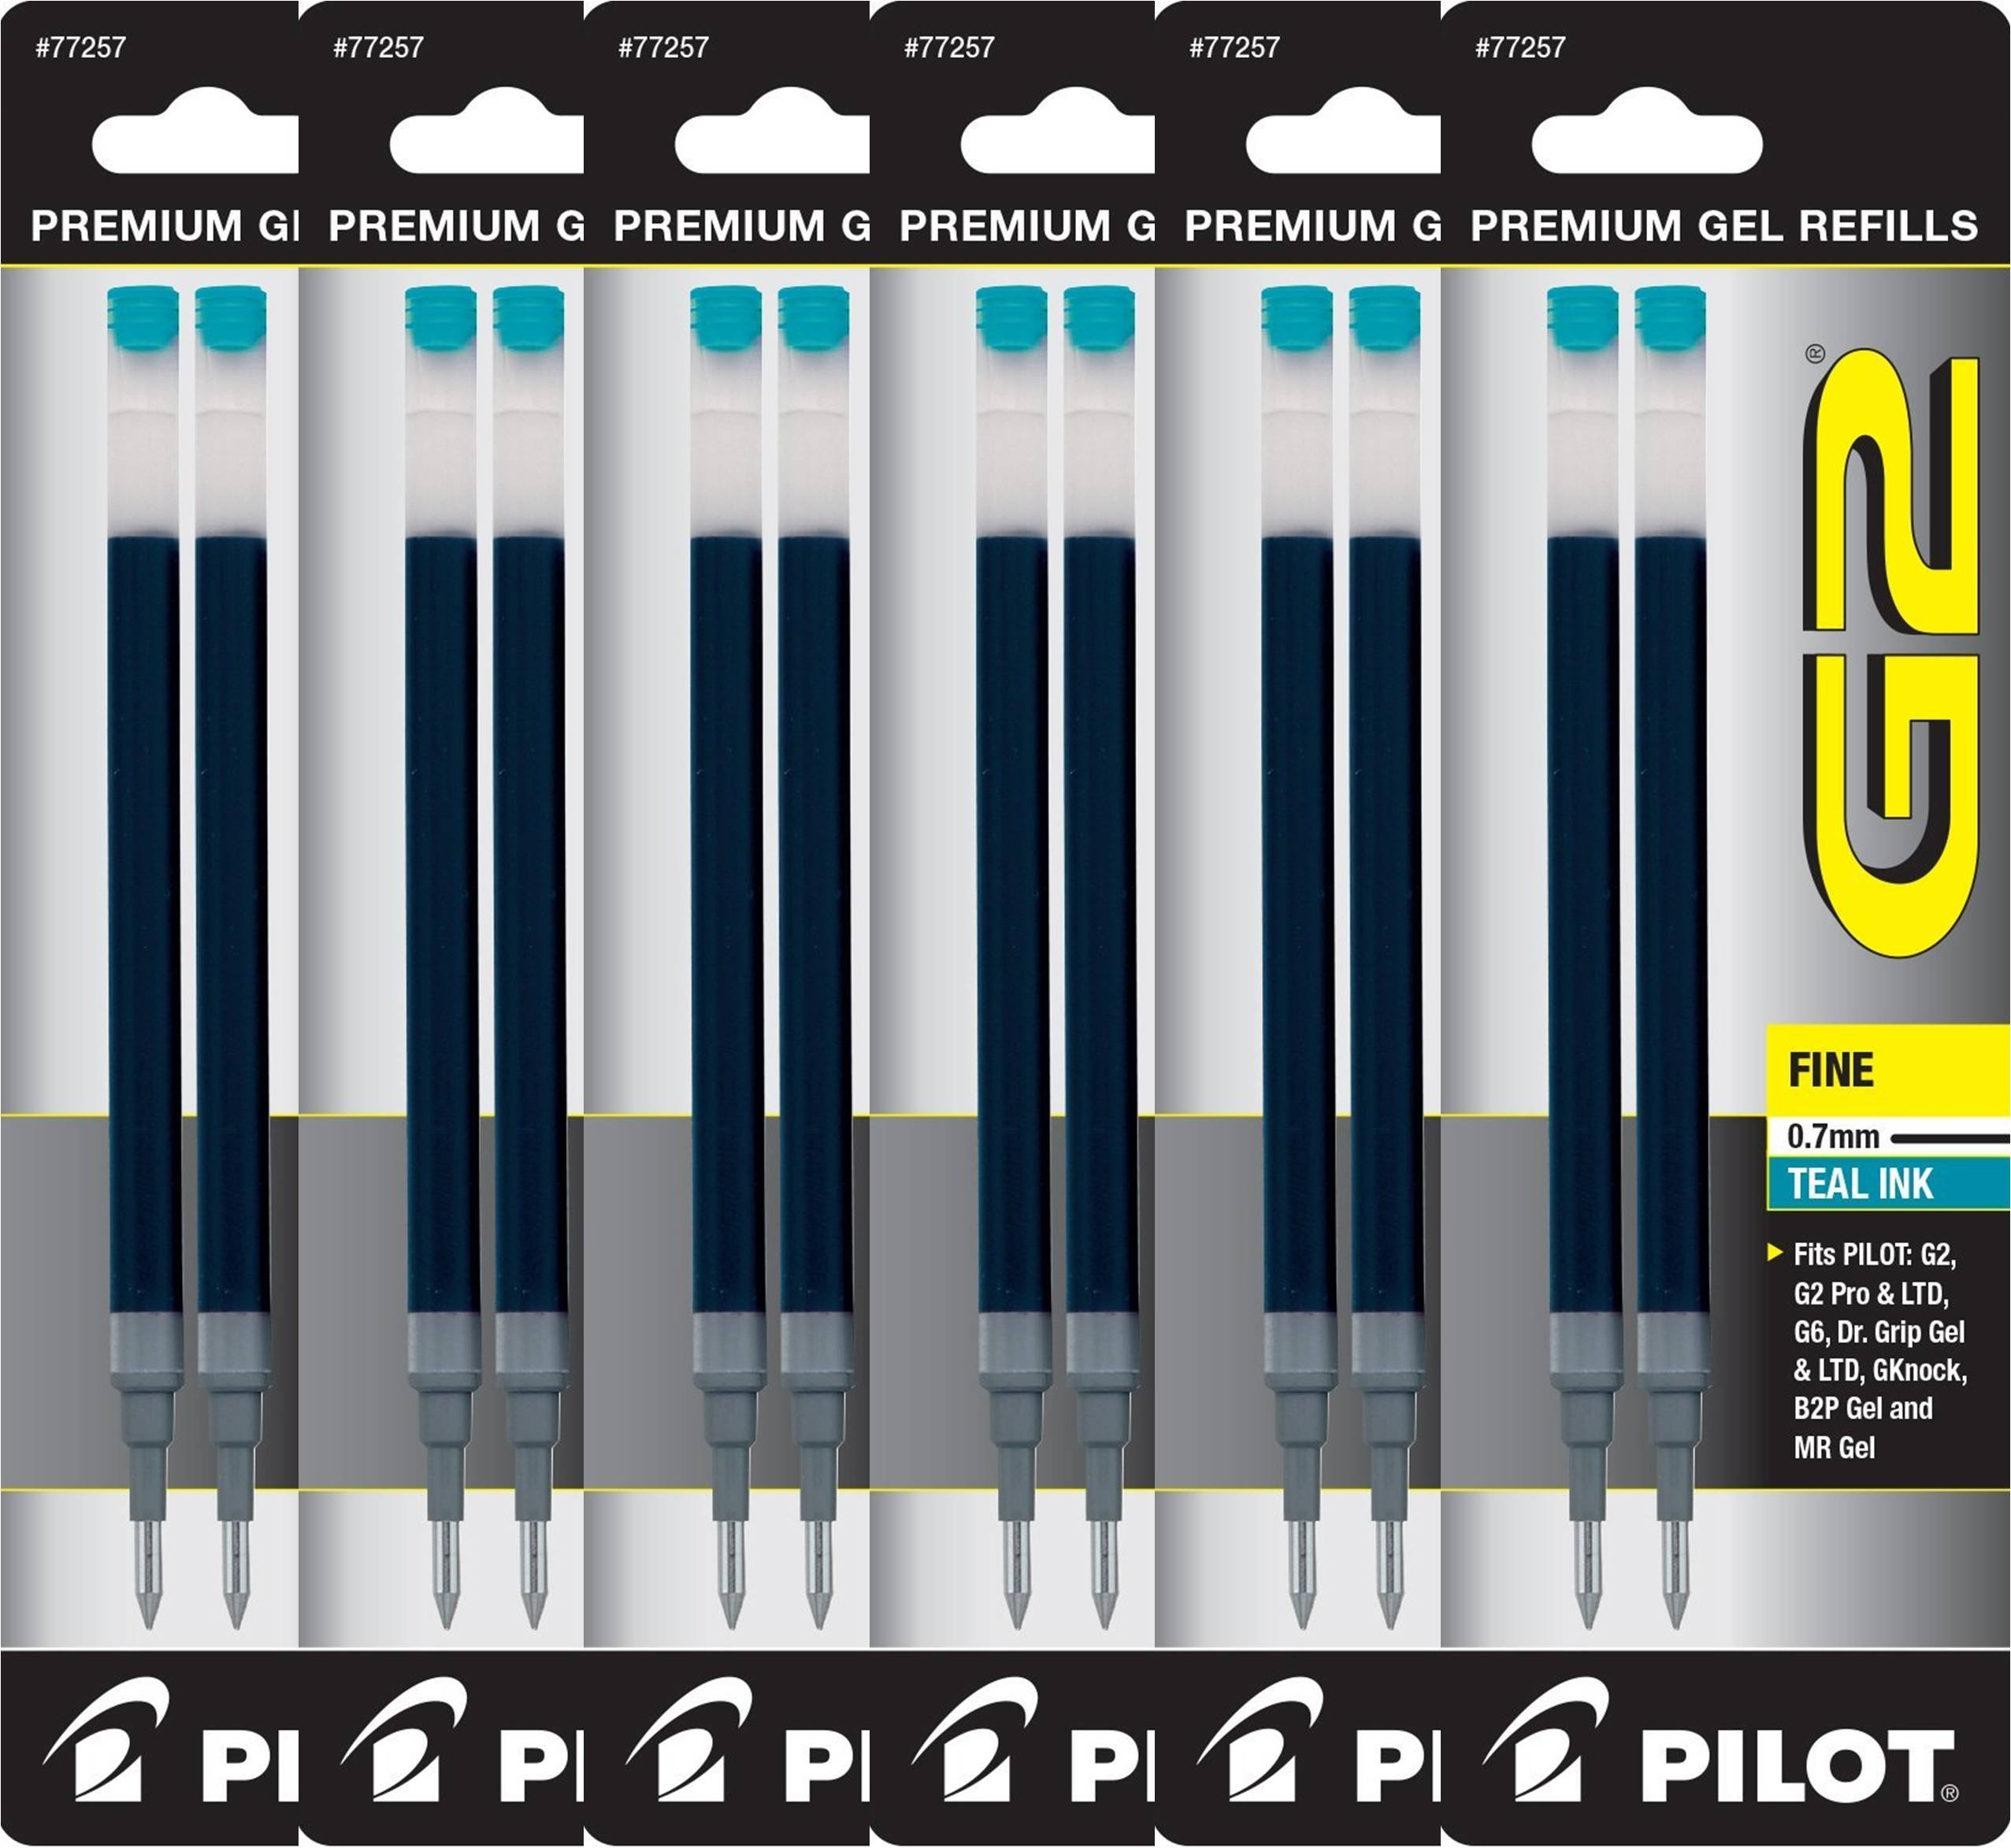 Value Pack of 6 - Pilot G2 Gel Ink Refills for Rolling Ball Pen, Fine Point, Teal (77257) by Pilot